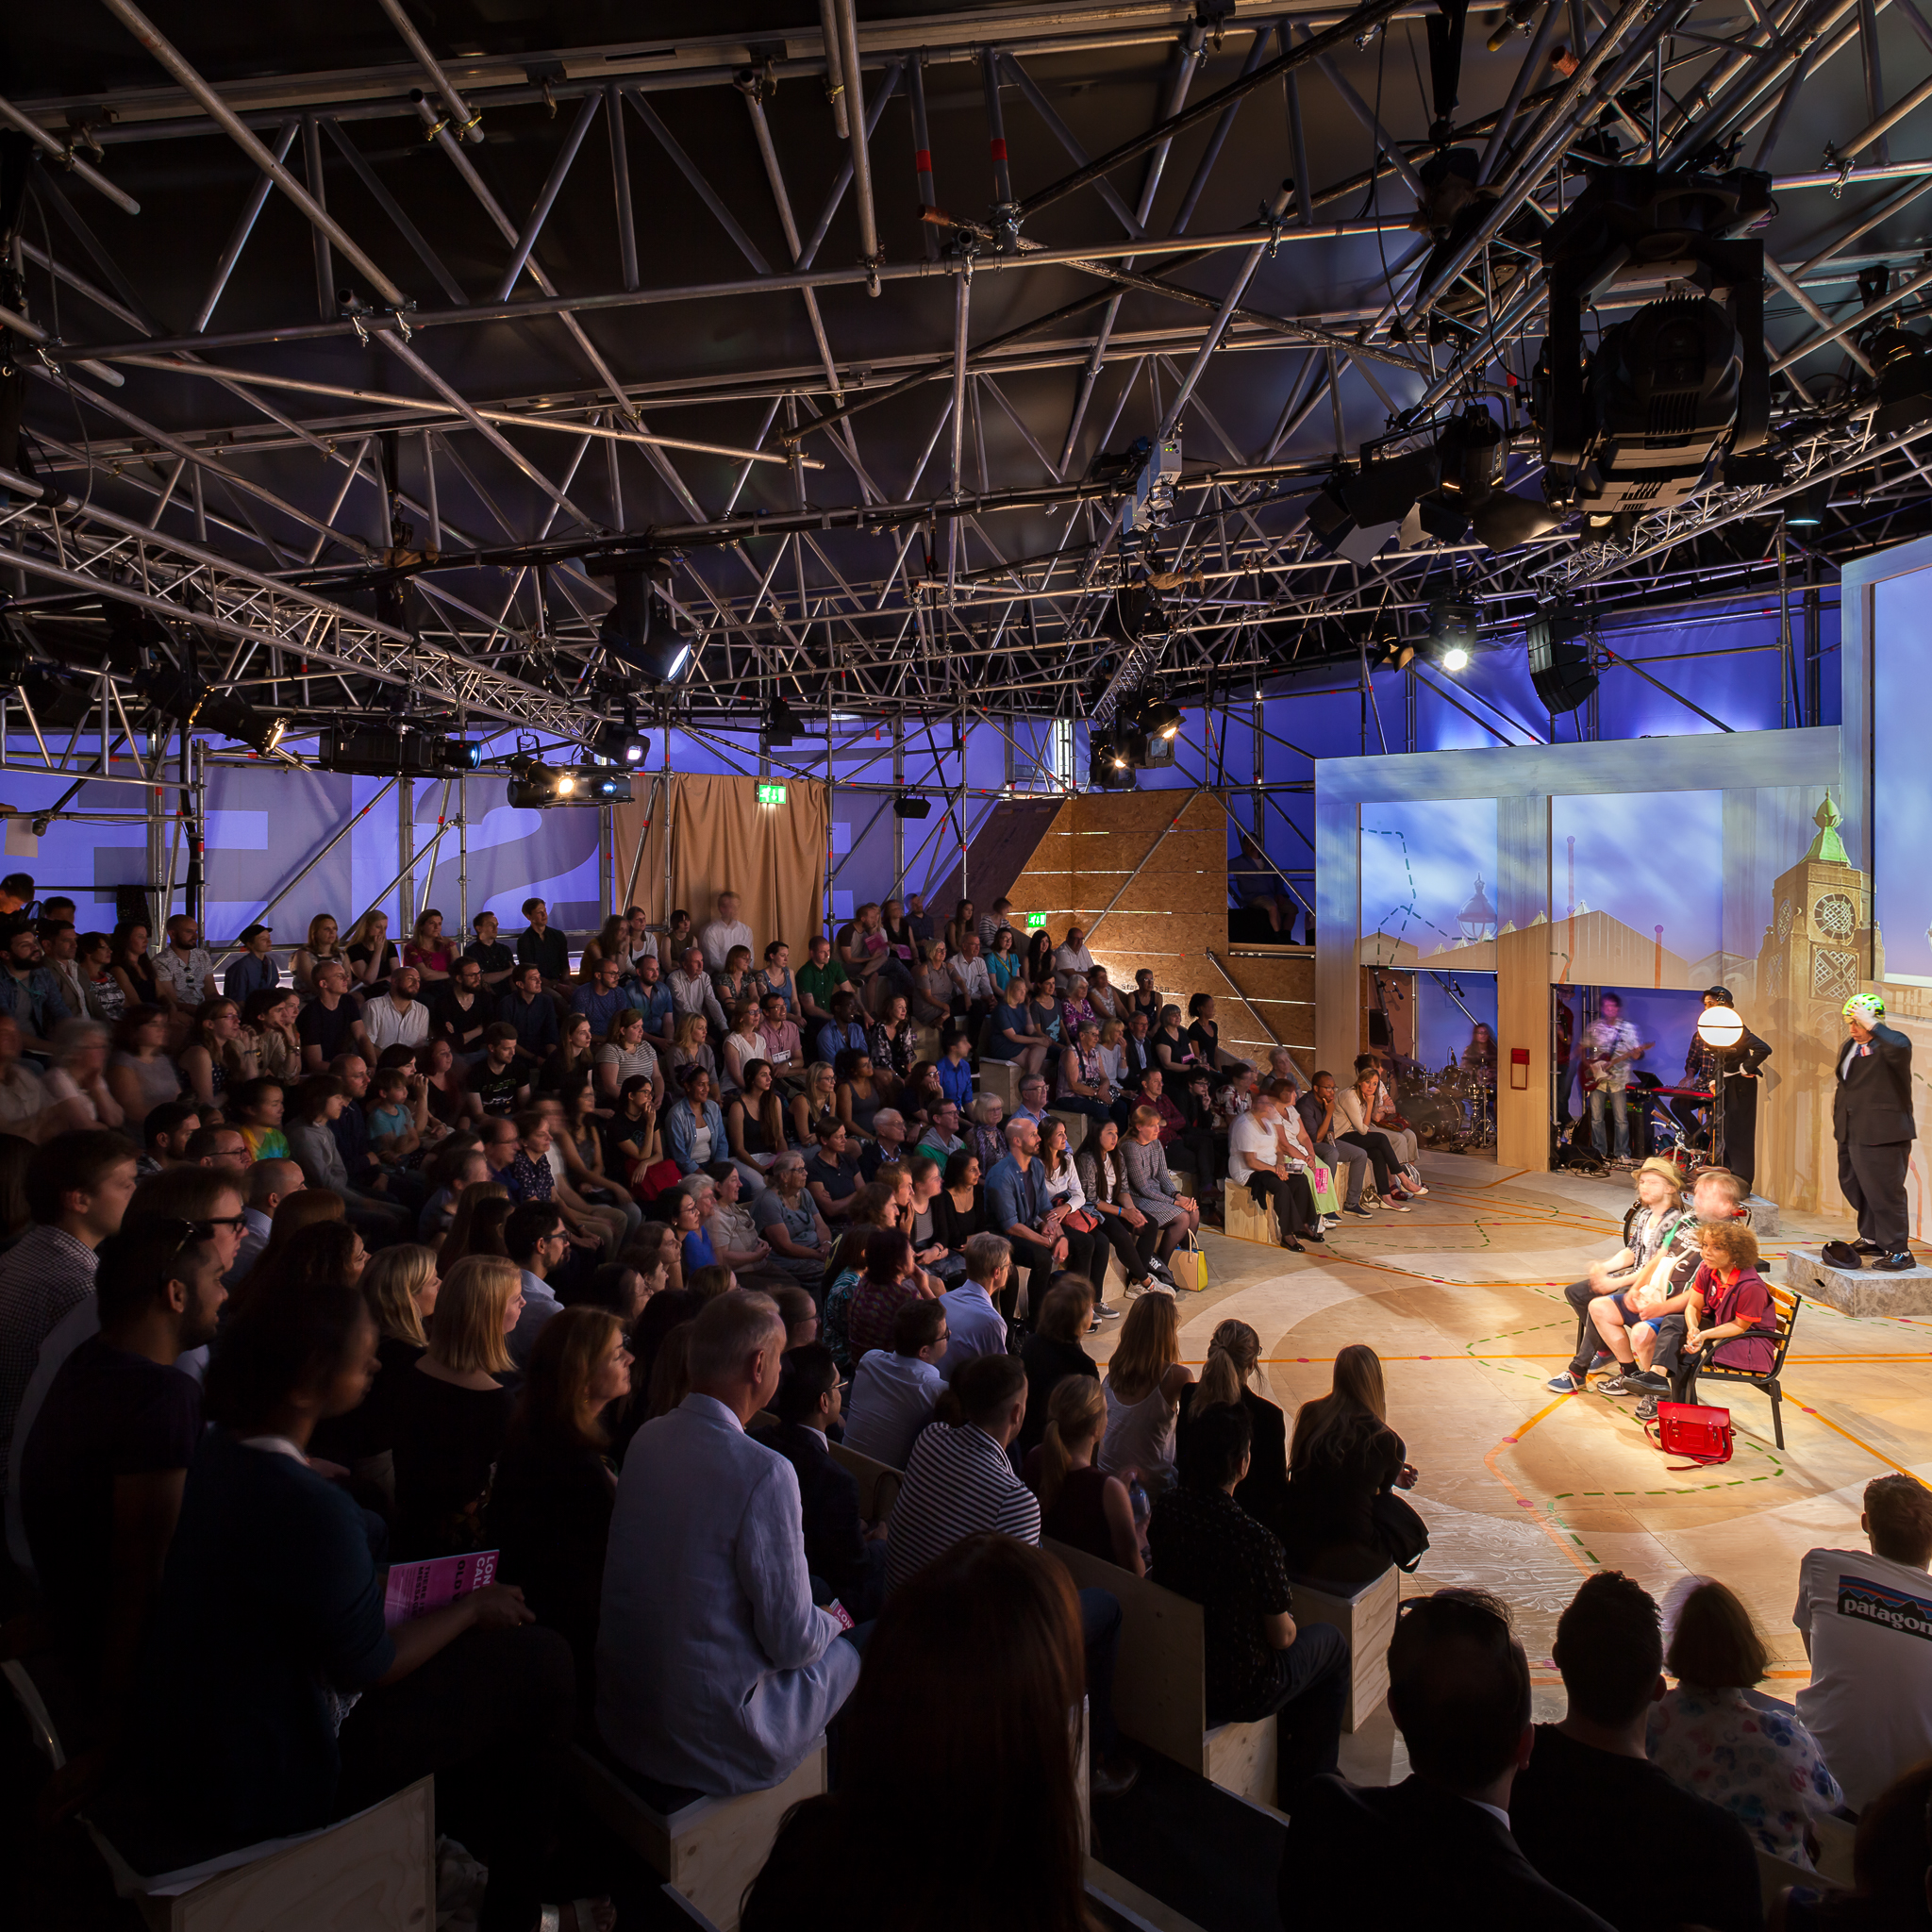 Polysemic-The-OVNV-Old-Vic-New-Voices-RISE Temporary-Theatre-Peter-Landers-Pano_9980_9983.jpg